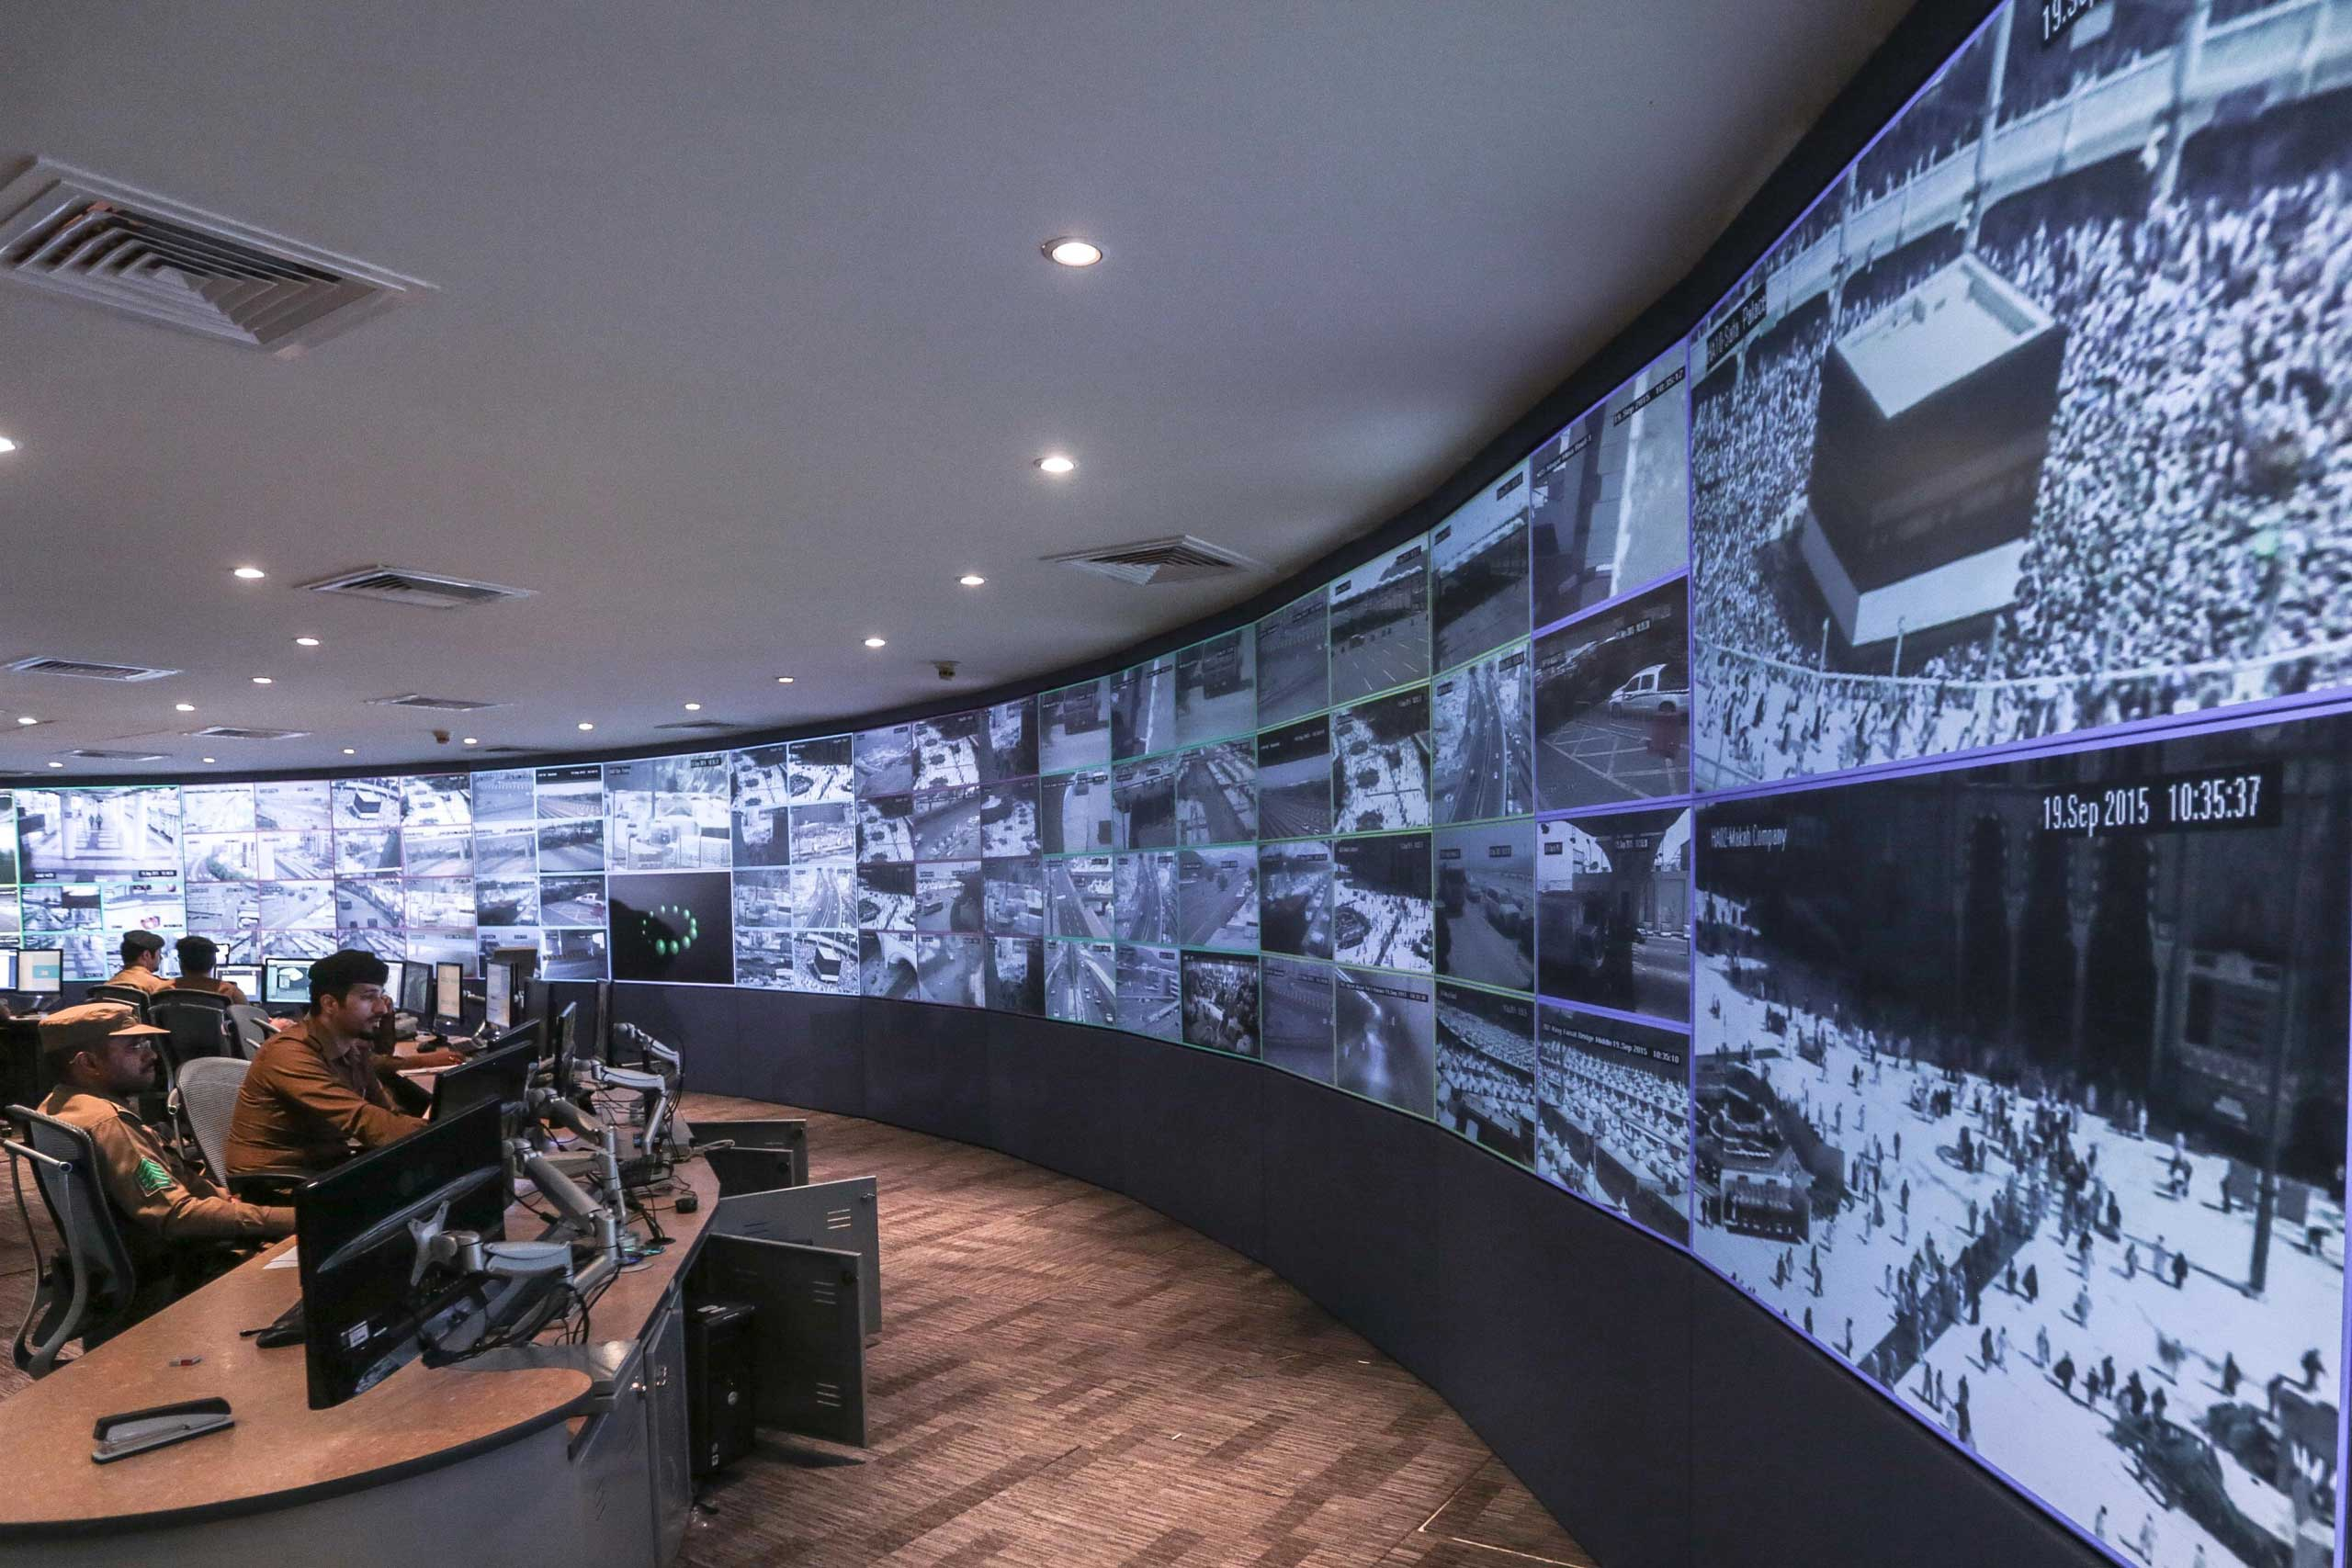 Saudi security officers monitor live feed screens showing Muslim pilgrims in the holy city of Mecca, along with highways and high density areas, a few days before the annual pilgrimage, known as the hajj, in Mecca, on Sept. 19, 2015.